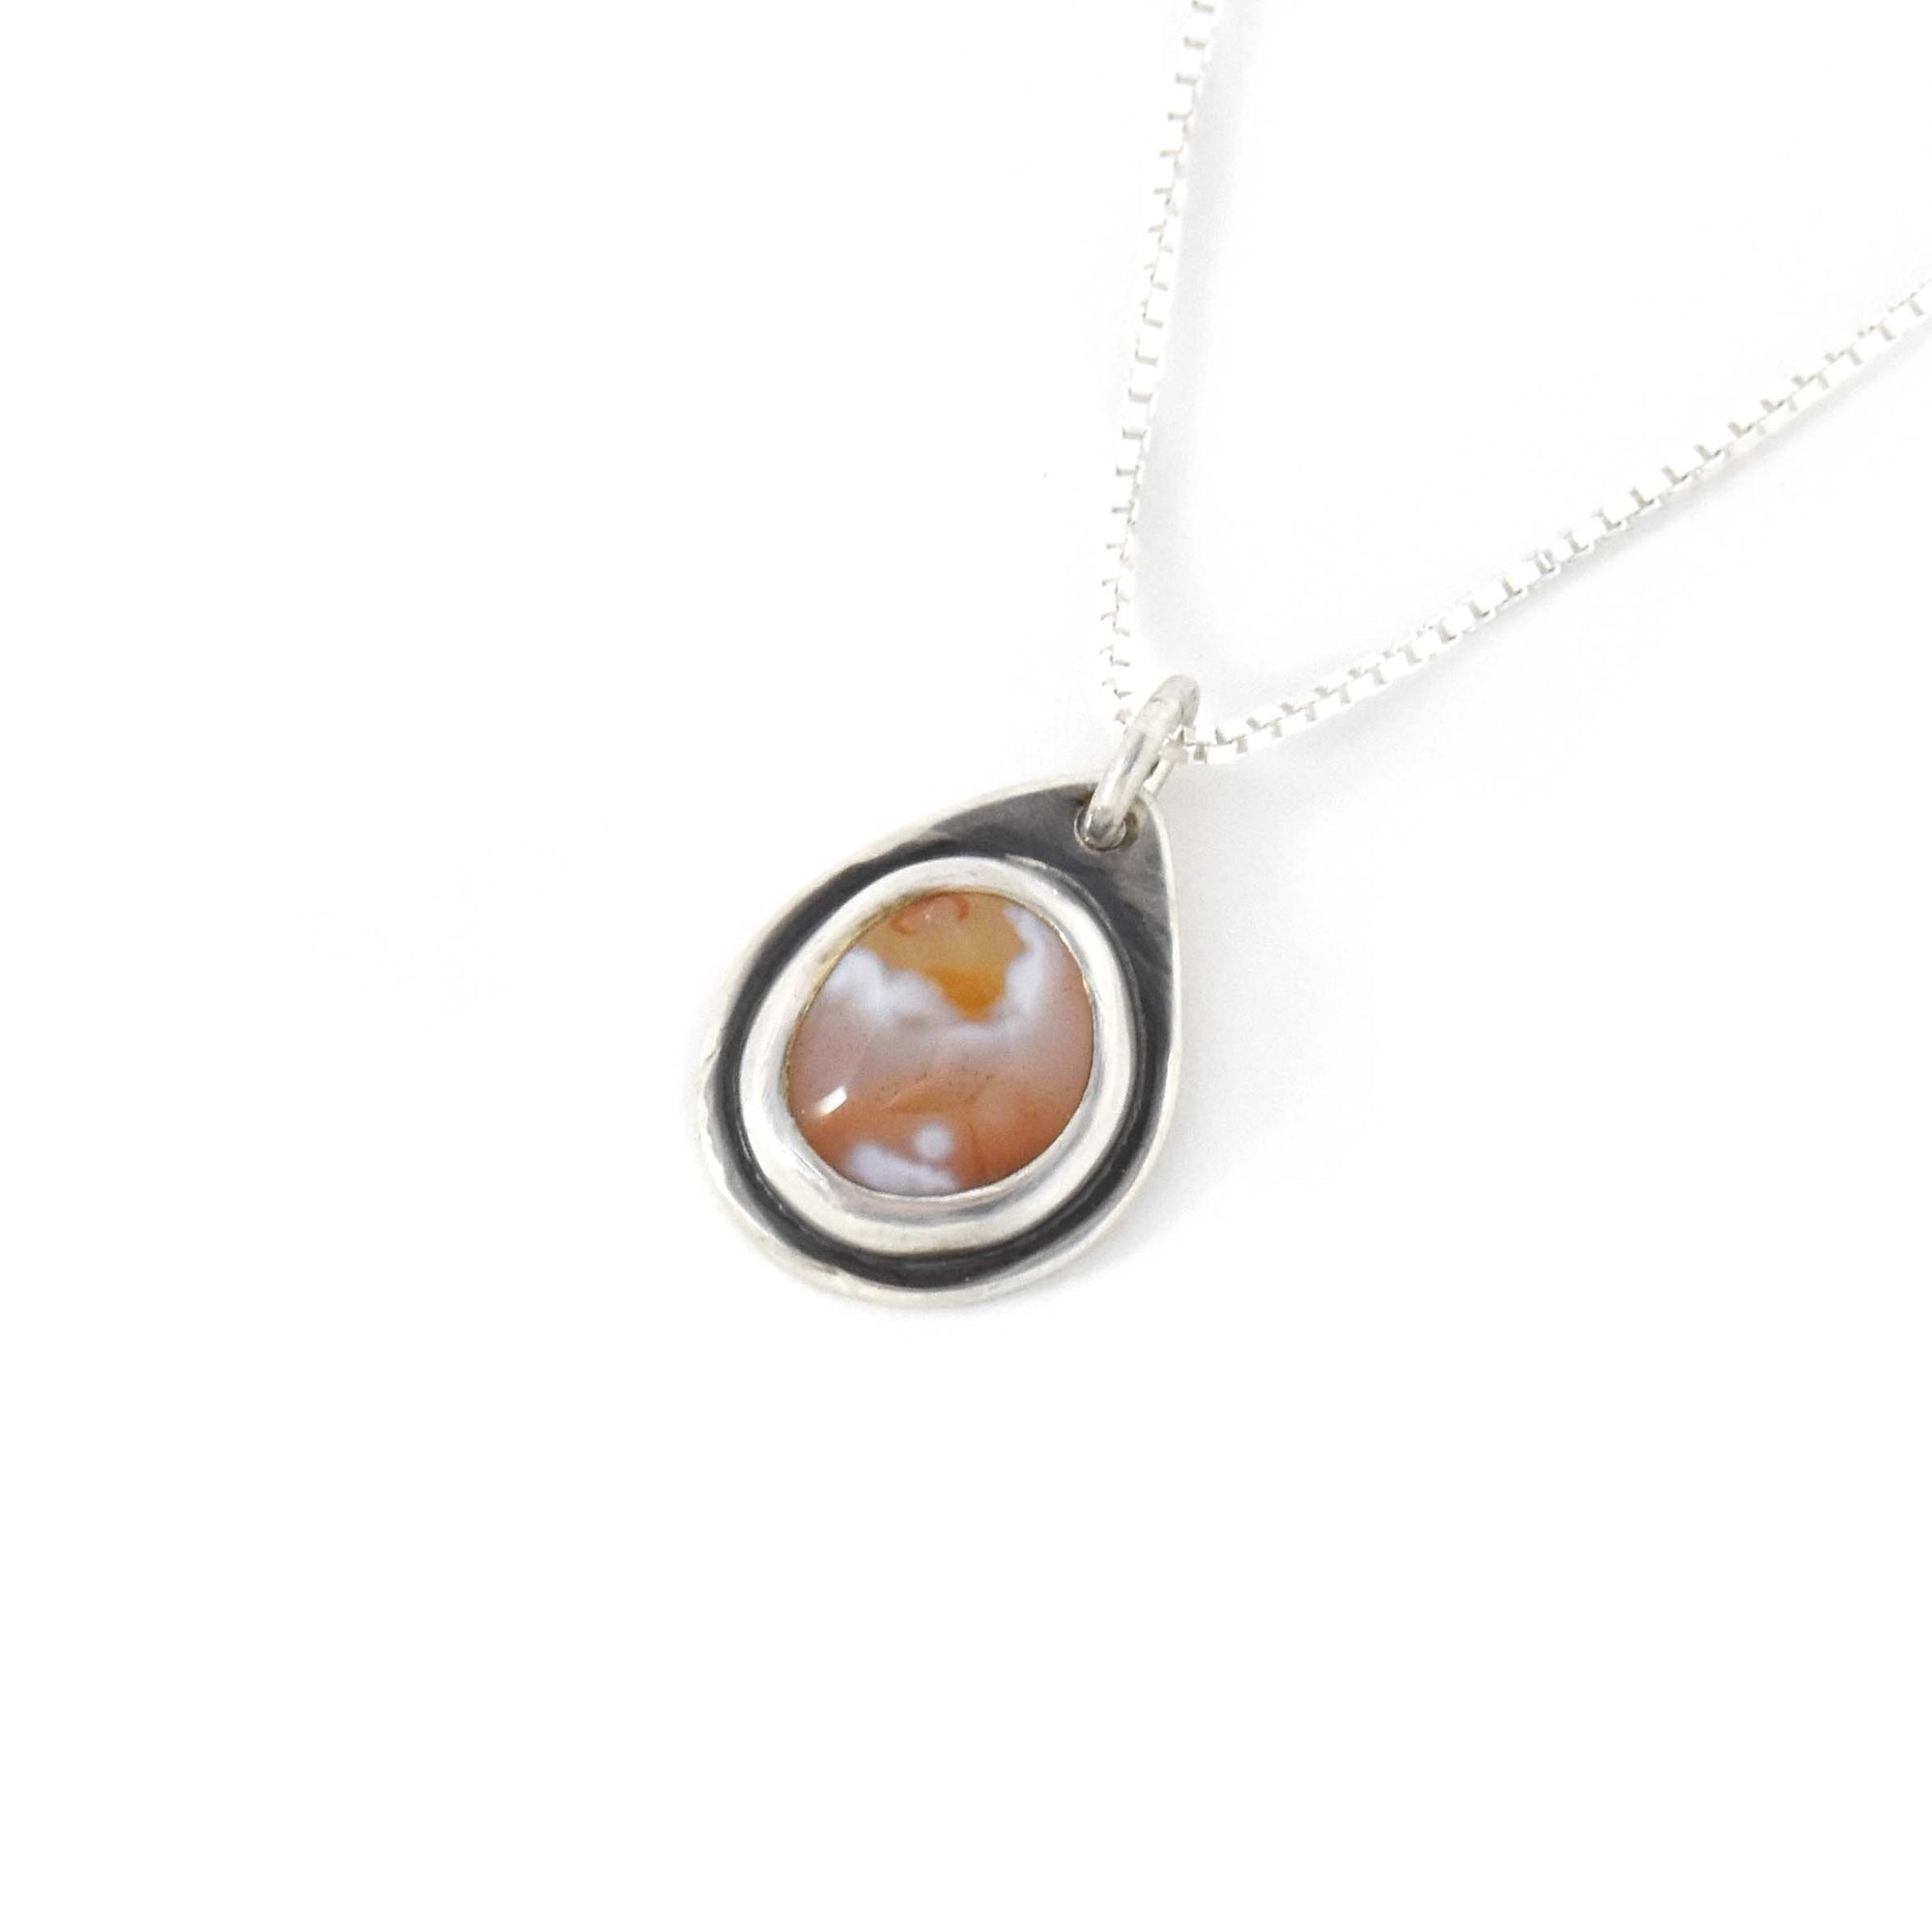 Lake Superior Agate Drop Pendant No. 8, Silver Pendant handmade by Beth Millner Jewelry